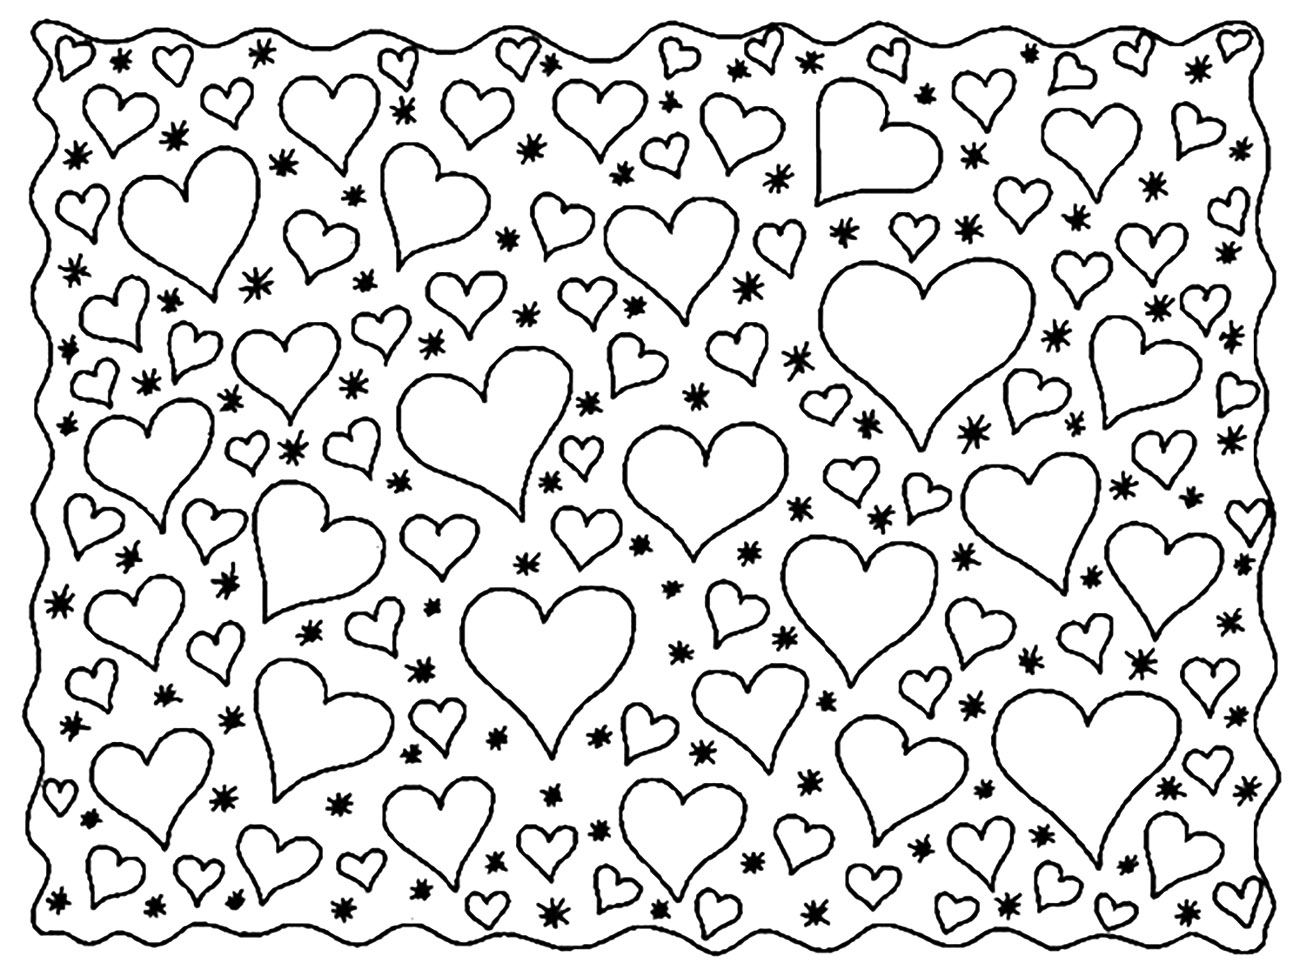 heart color sheets easy heart coloring pages for kids stripe patterns heart color sheets